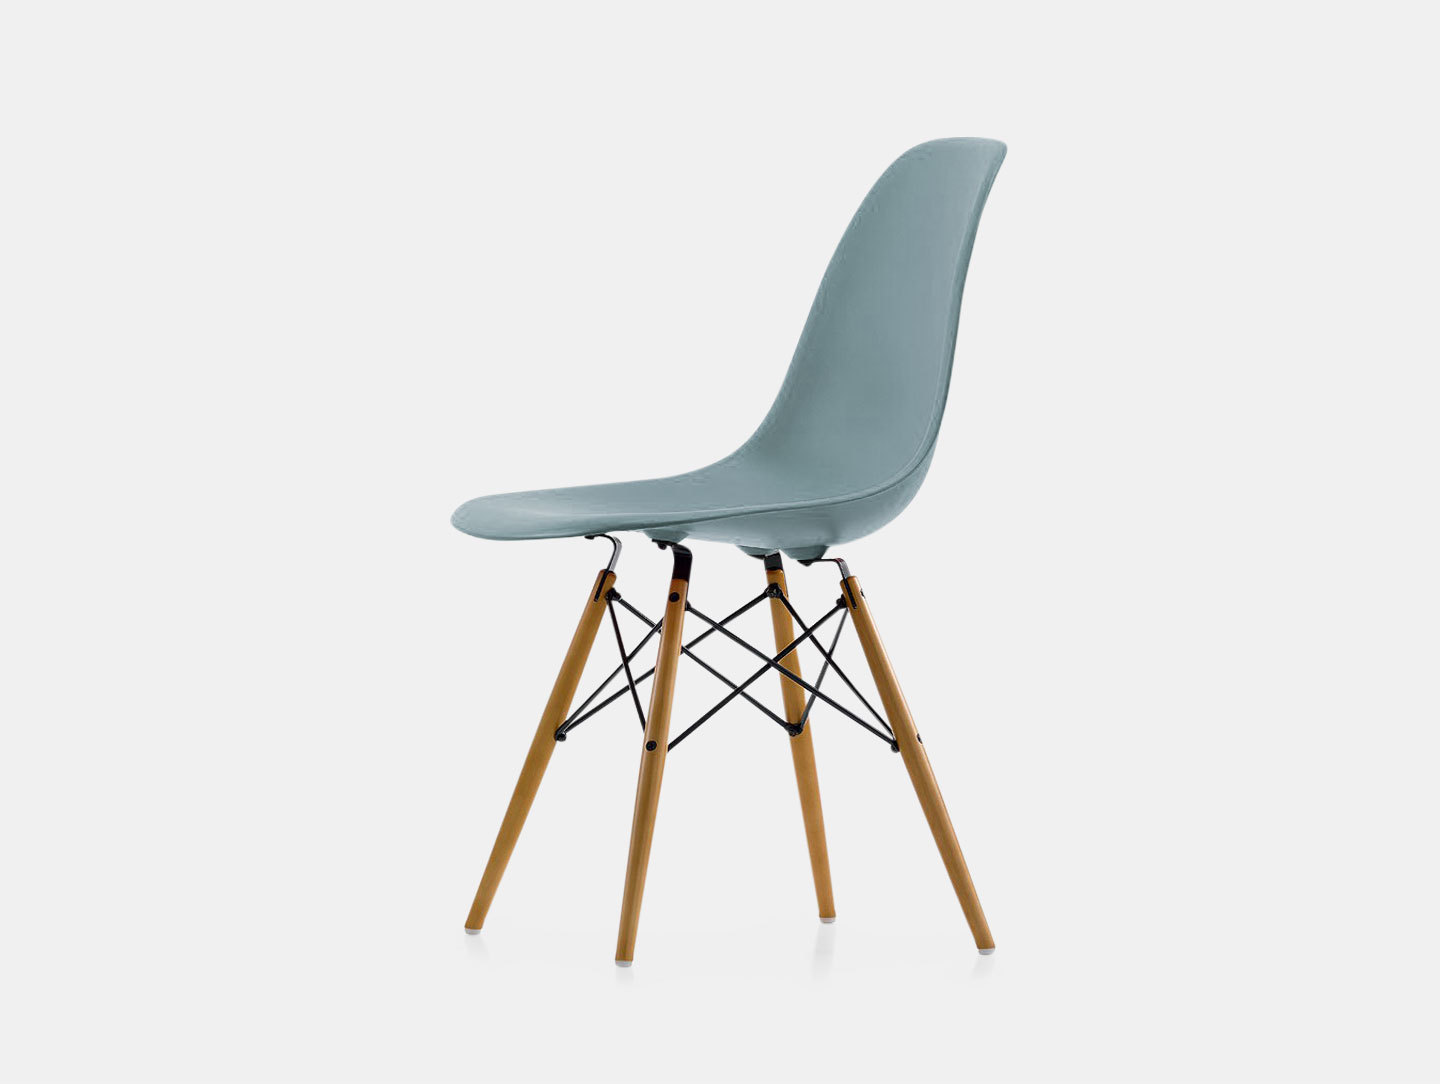 Eames DSW Plastic Side Chair image 1